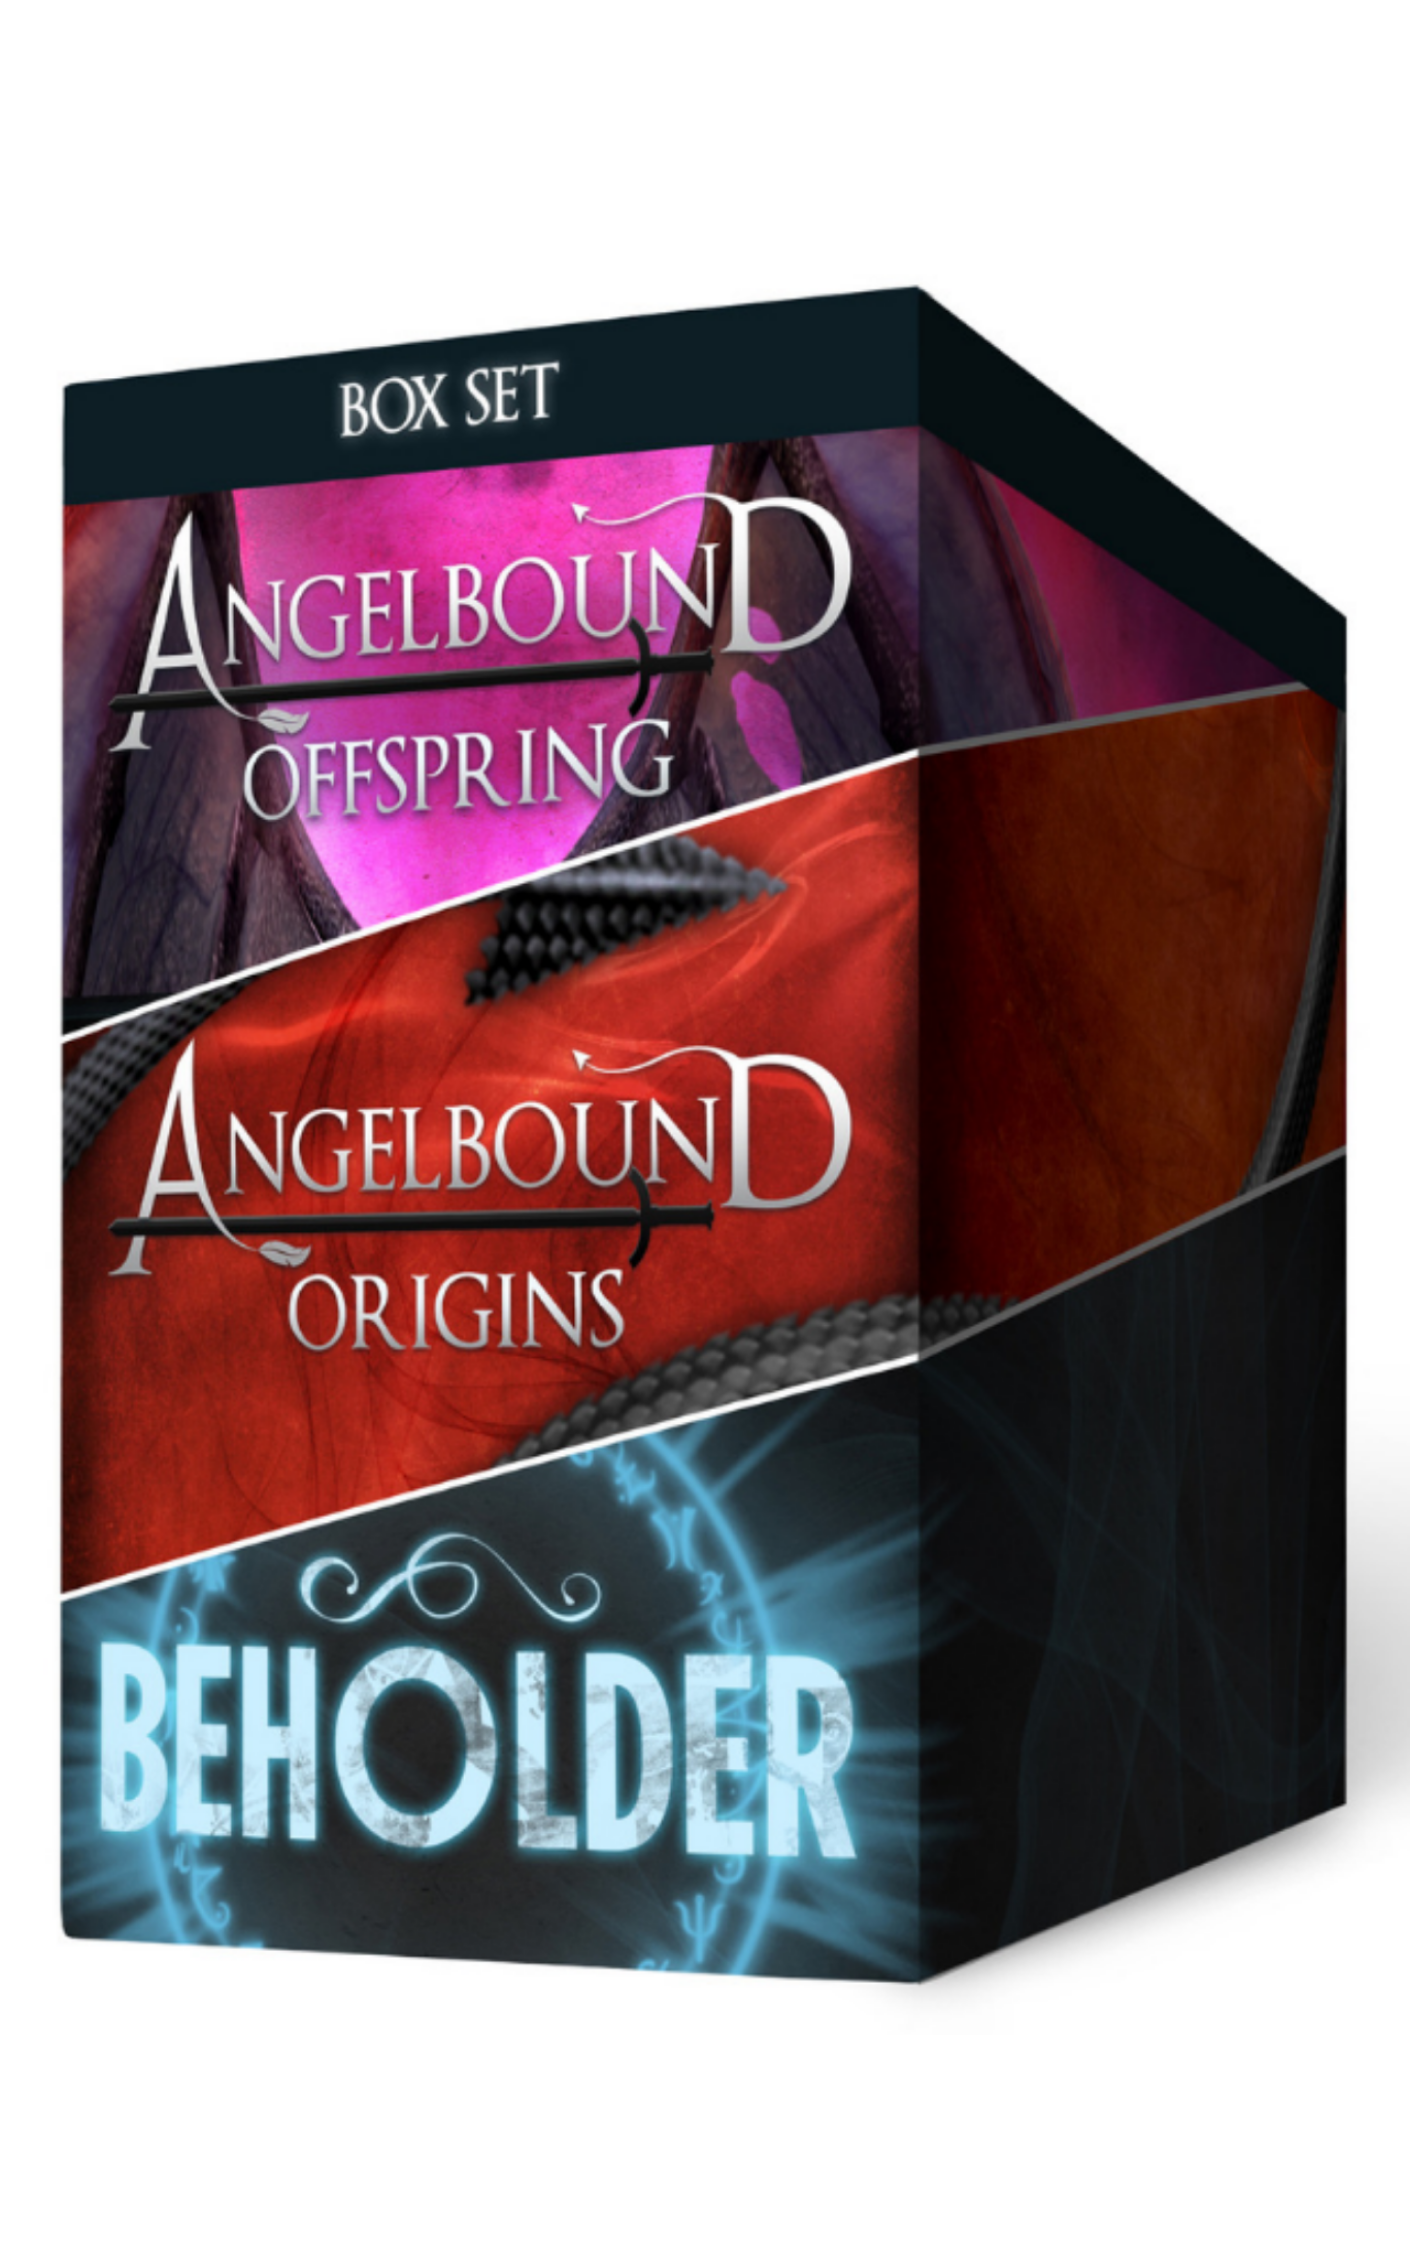 Angelbound and Beholder Special Edition Box Set